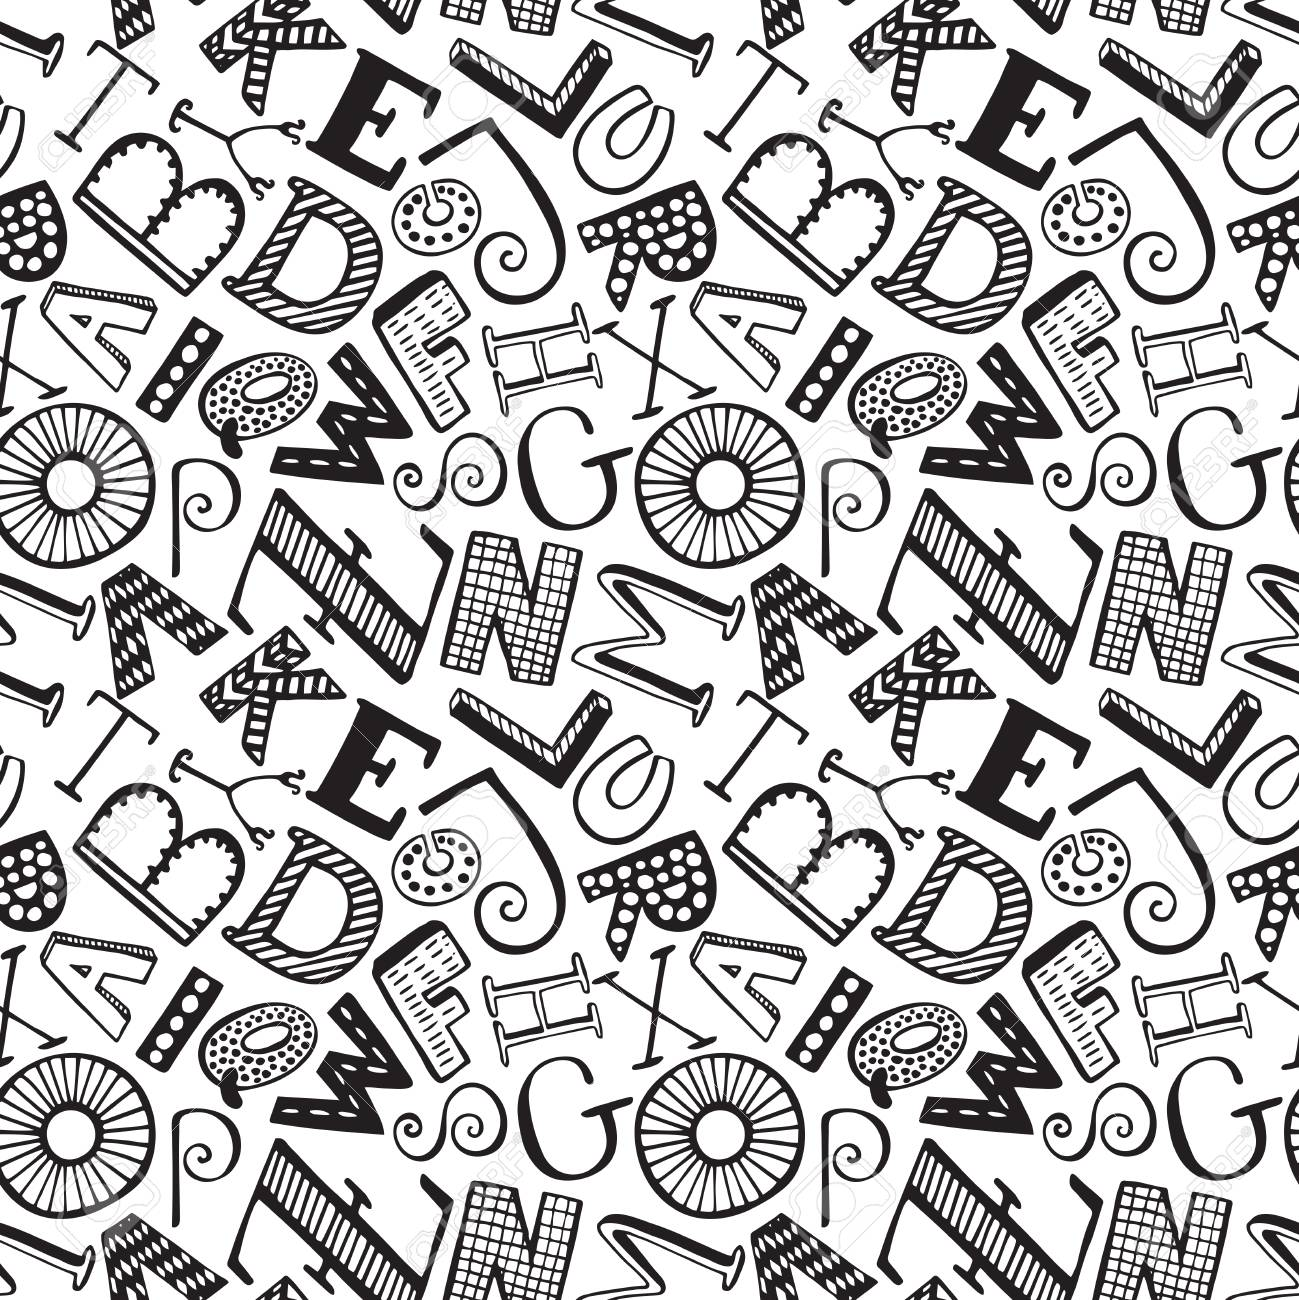 Seamless pattern with hand drawn fancy alphabet funny doodle seamless pattern with hand drawn fancy alphabet funny doodle letters vector endless background with altavistaventures Image collections